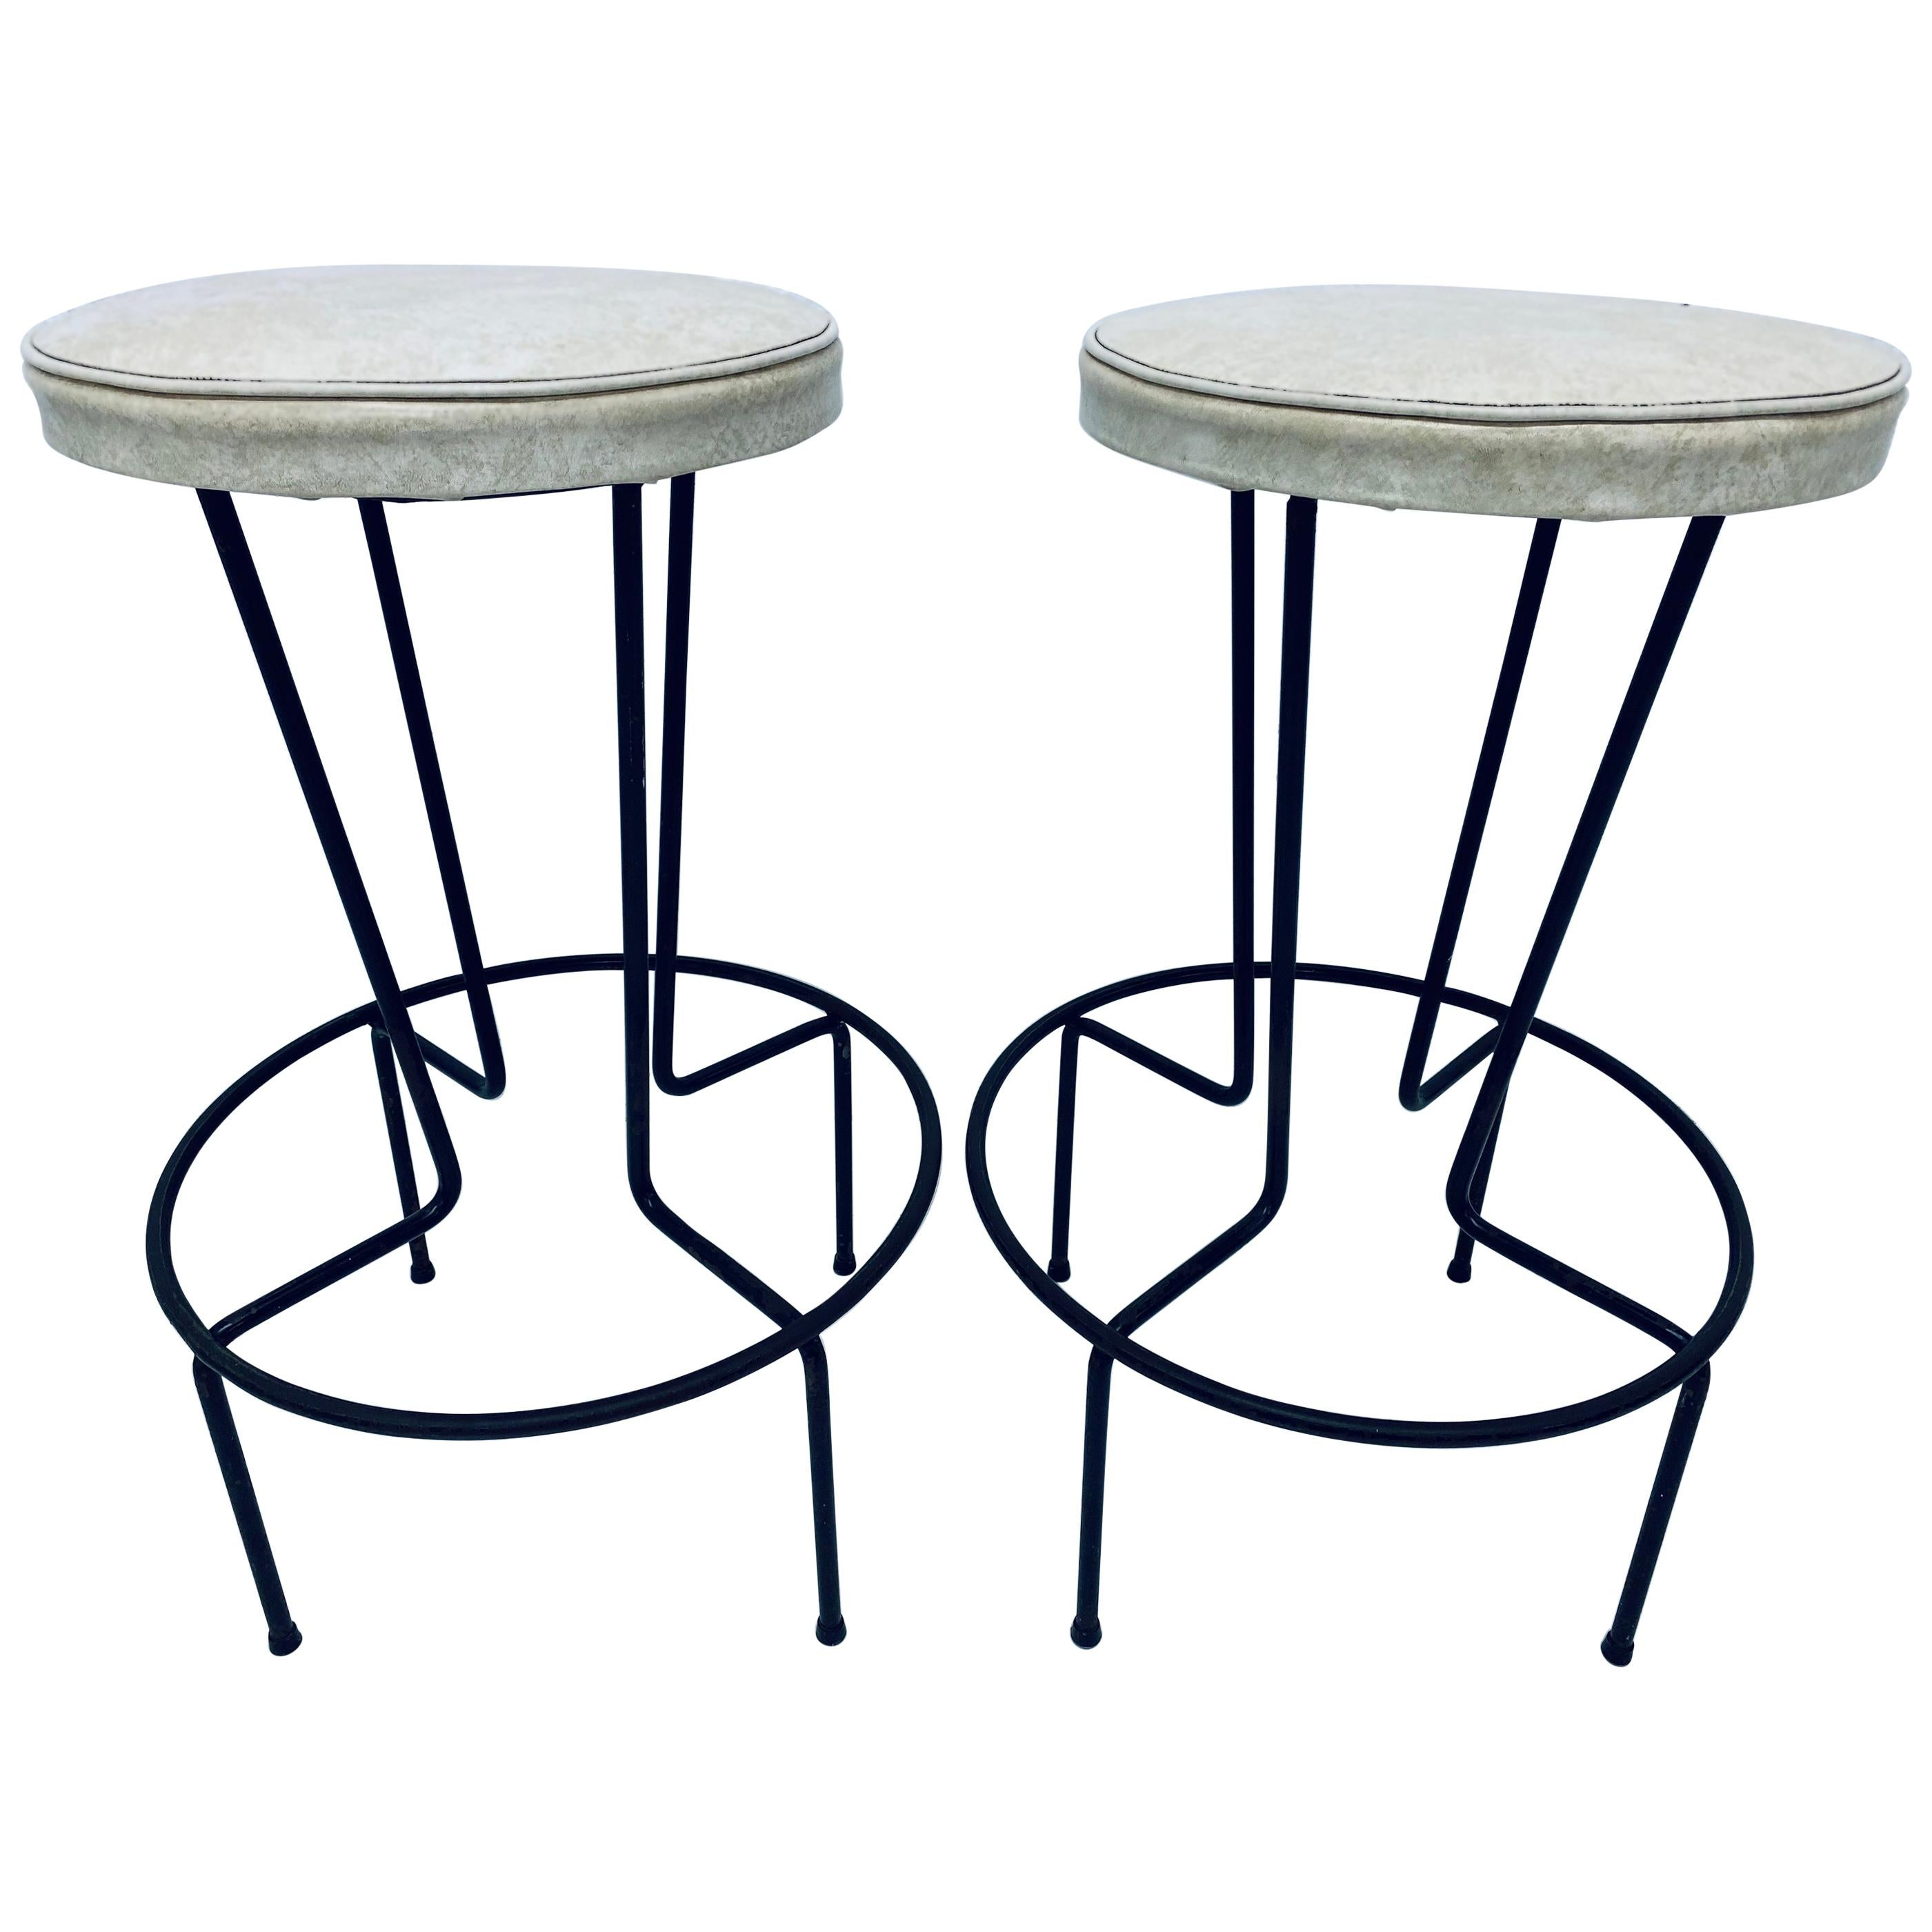 Mid-Century Frederick Weinberg Wrought Iron Bar Stools, a Pair